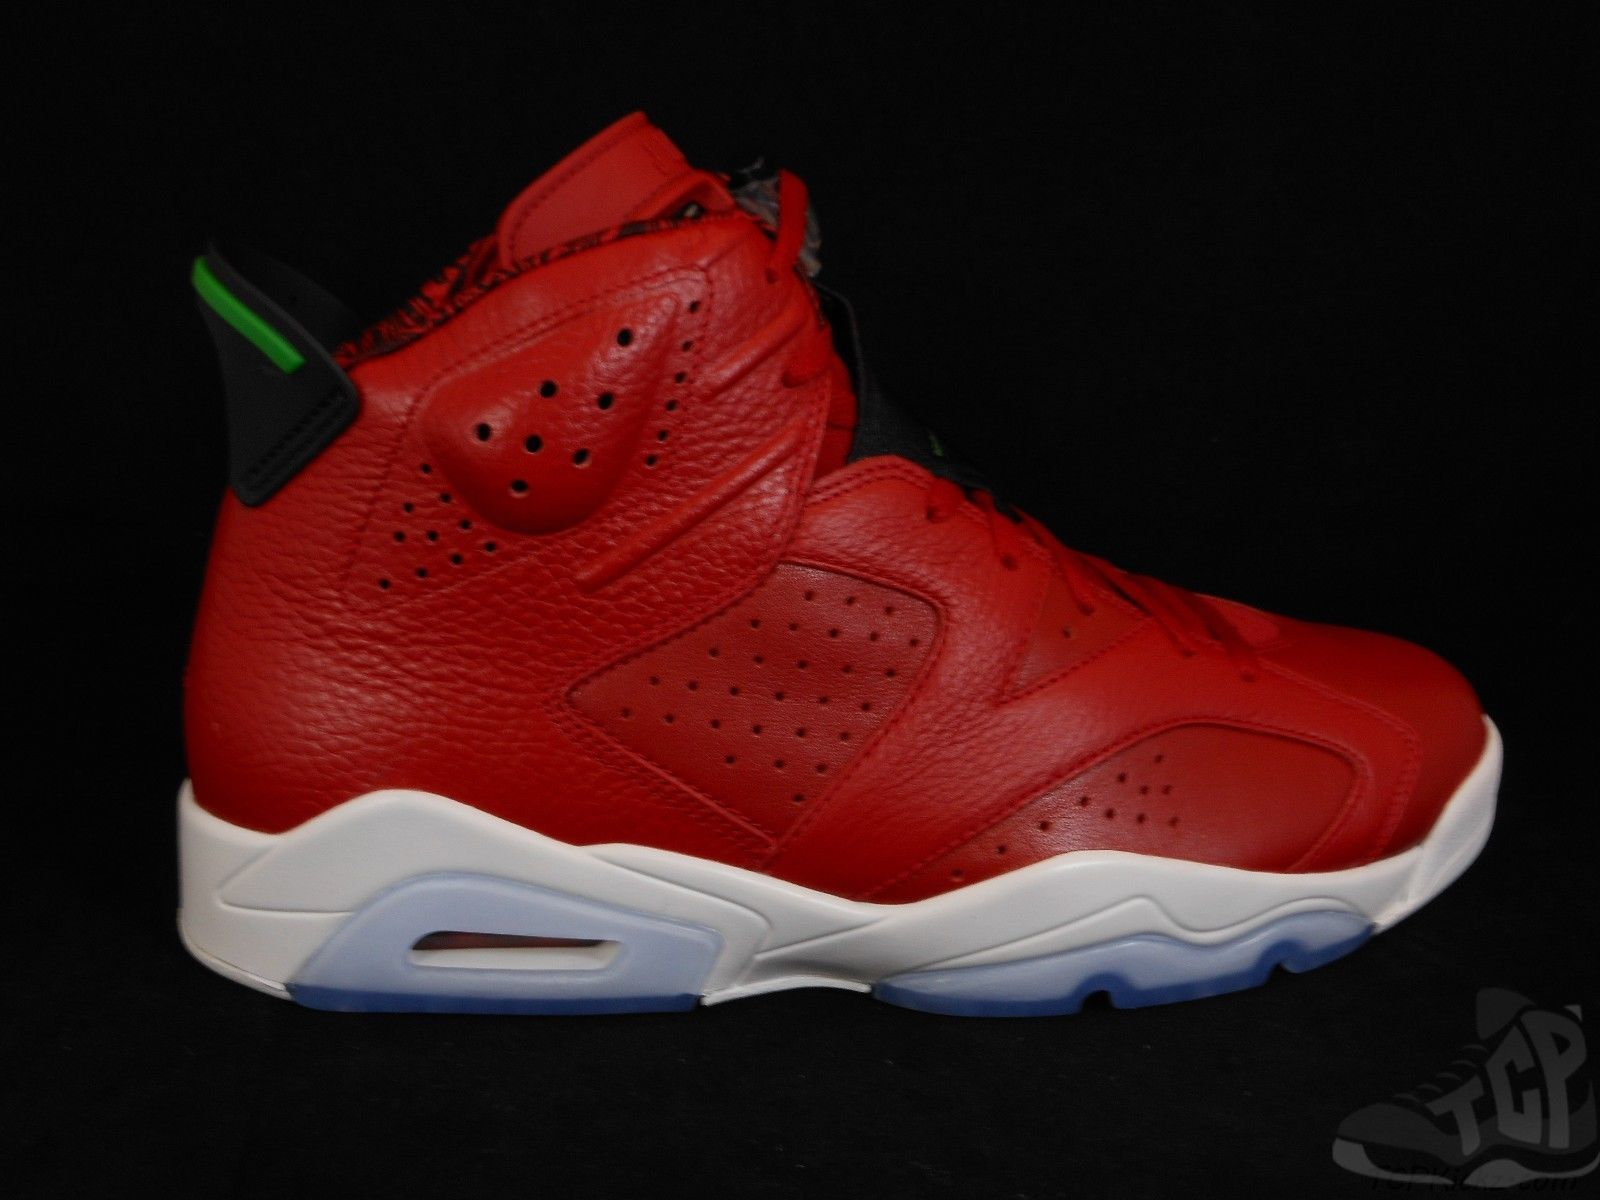 new arrival 5d5a2 d225b Men s Athletic Footwear   Jordan VI 6 Spizike HOF  tcpkickz  jordan  retro